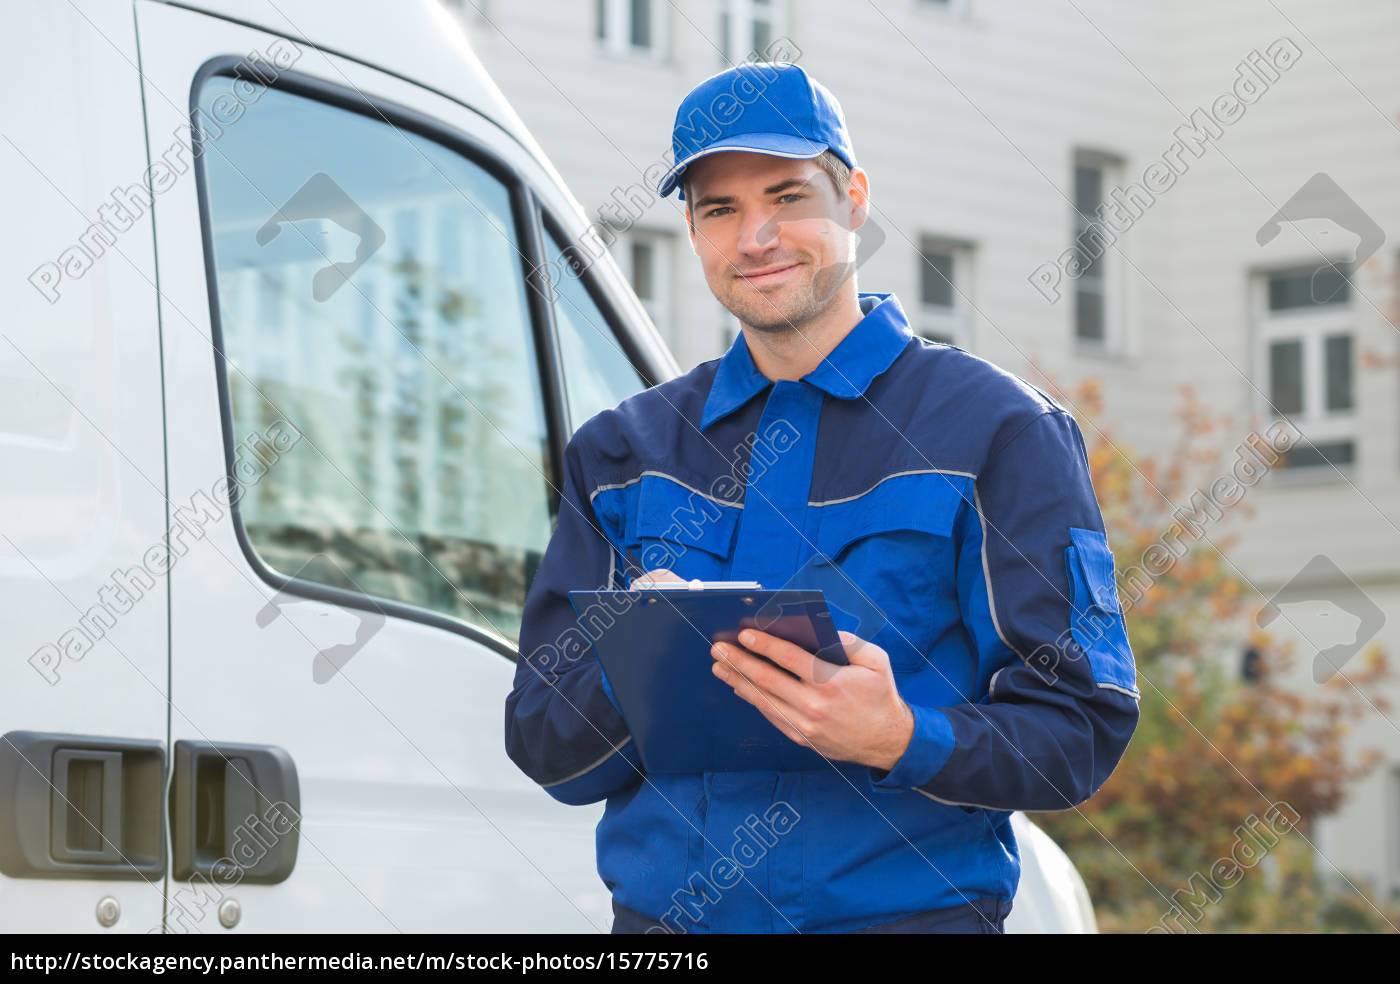 delivery, man, in, uniform, holding-klemmbrett, mit - 15775716